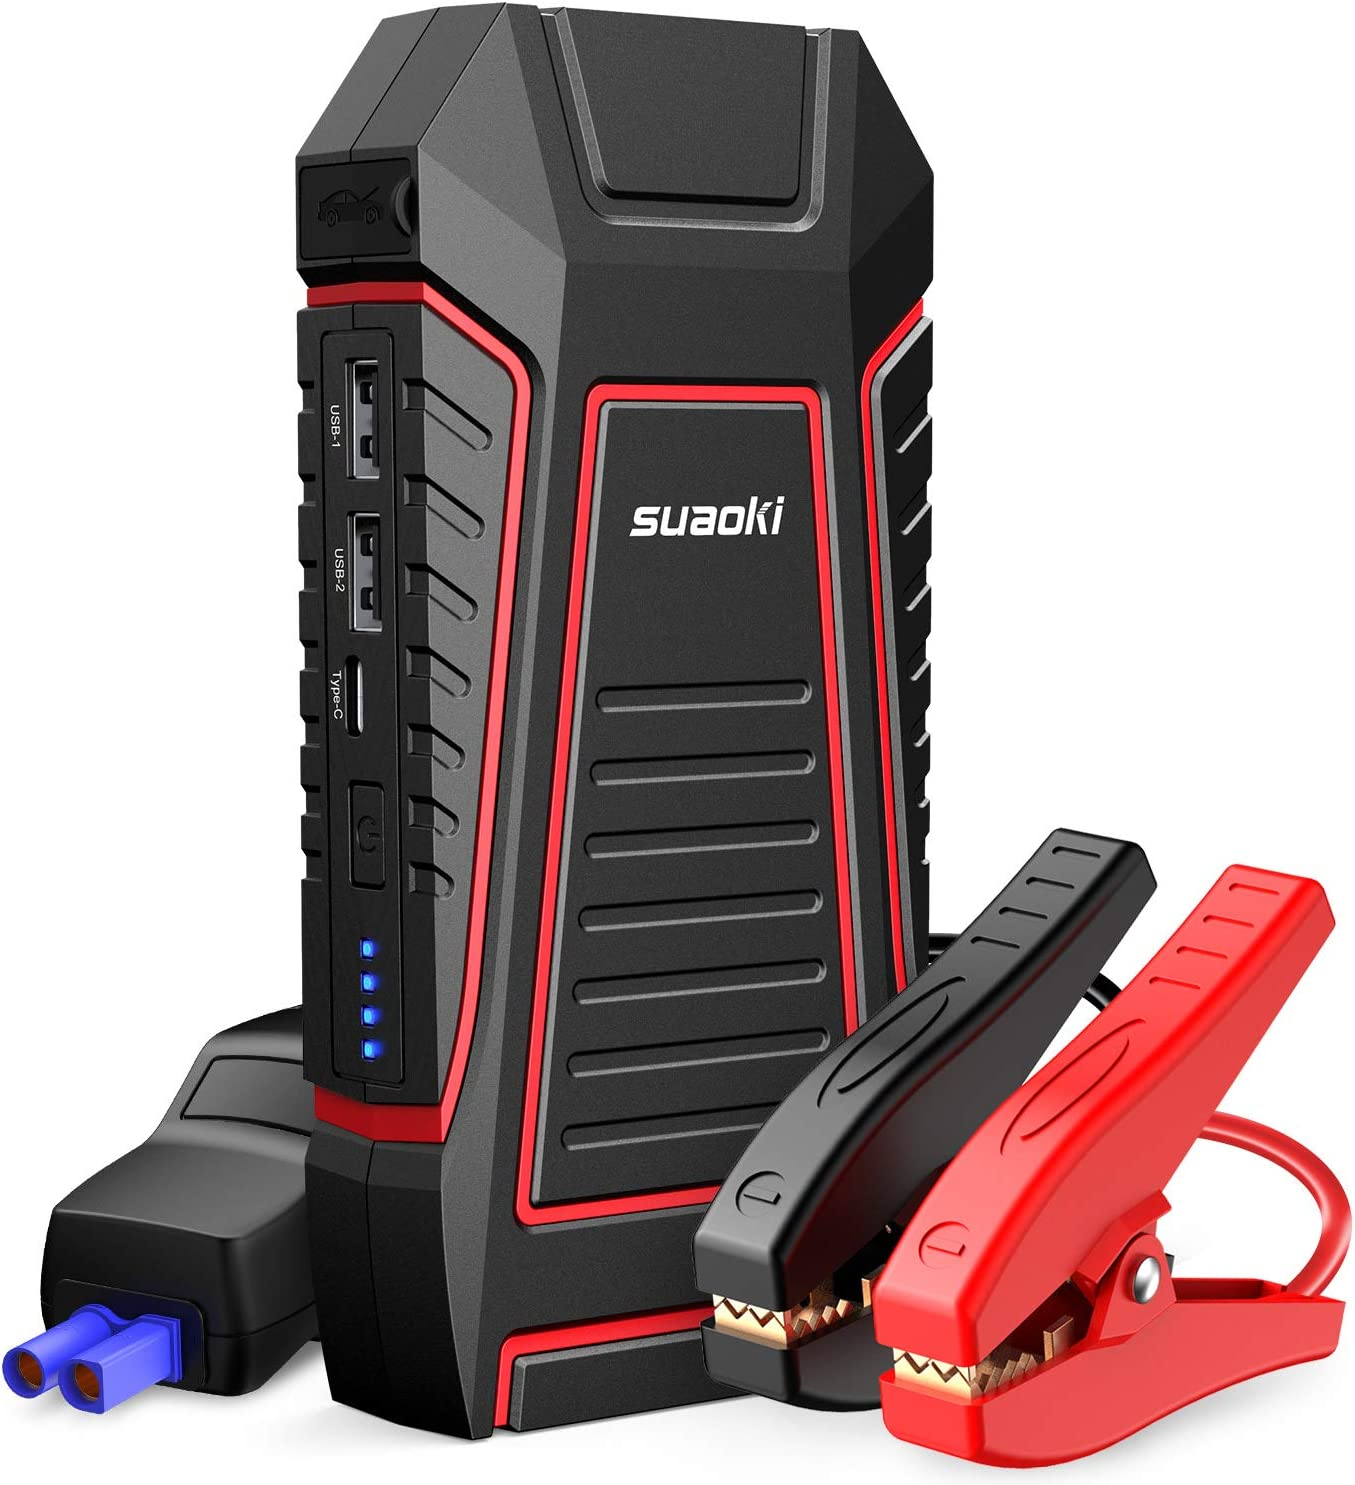 Car Battery Booster Power Pack with USB,Smart Clamps,LED Flashlight for 12V Car /&Motorcycles SUAOKI 400A Peak Portable Jump Starter up to 2.5L gas engine